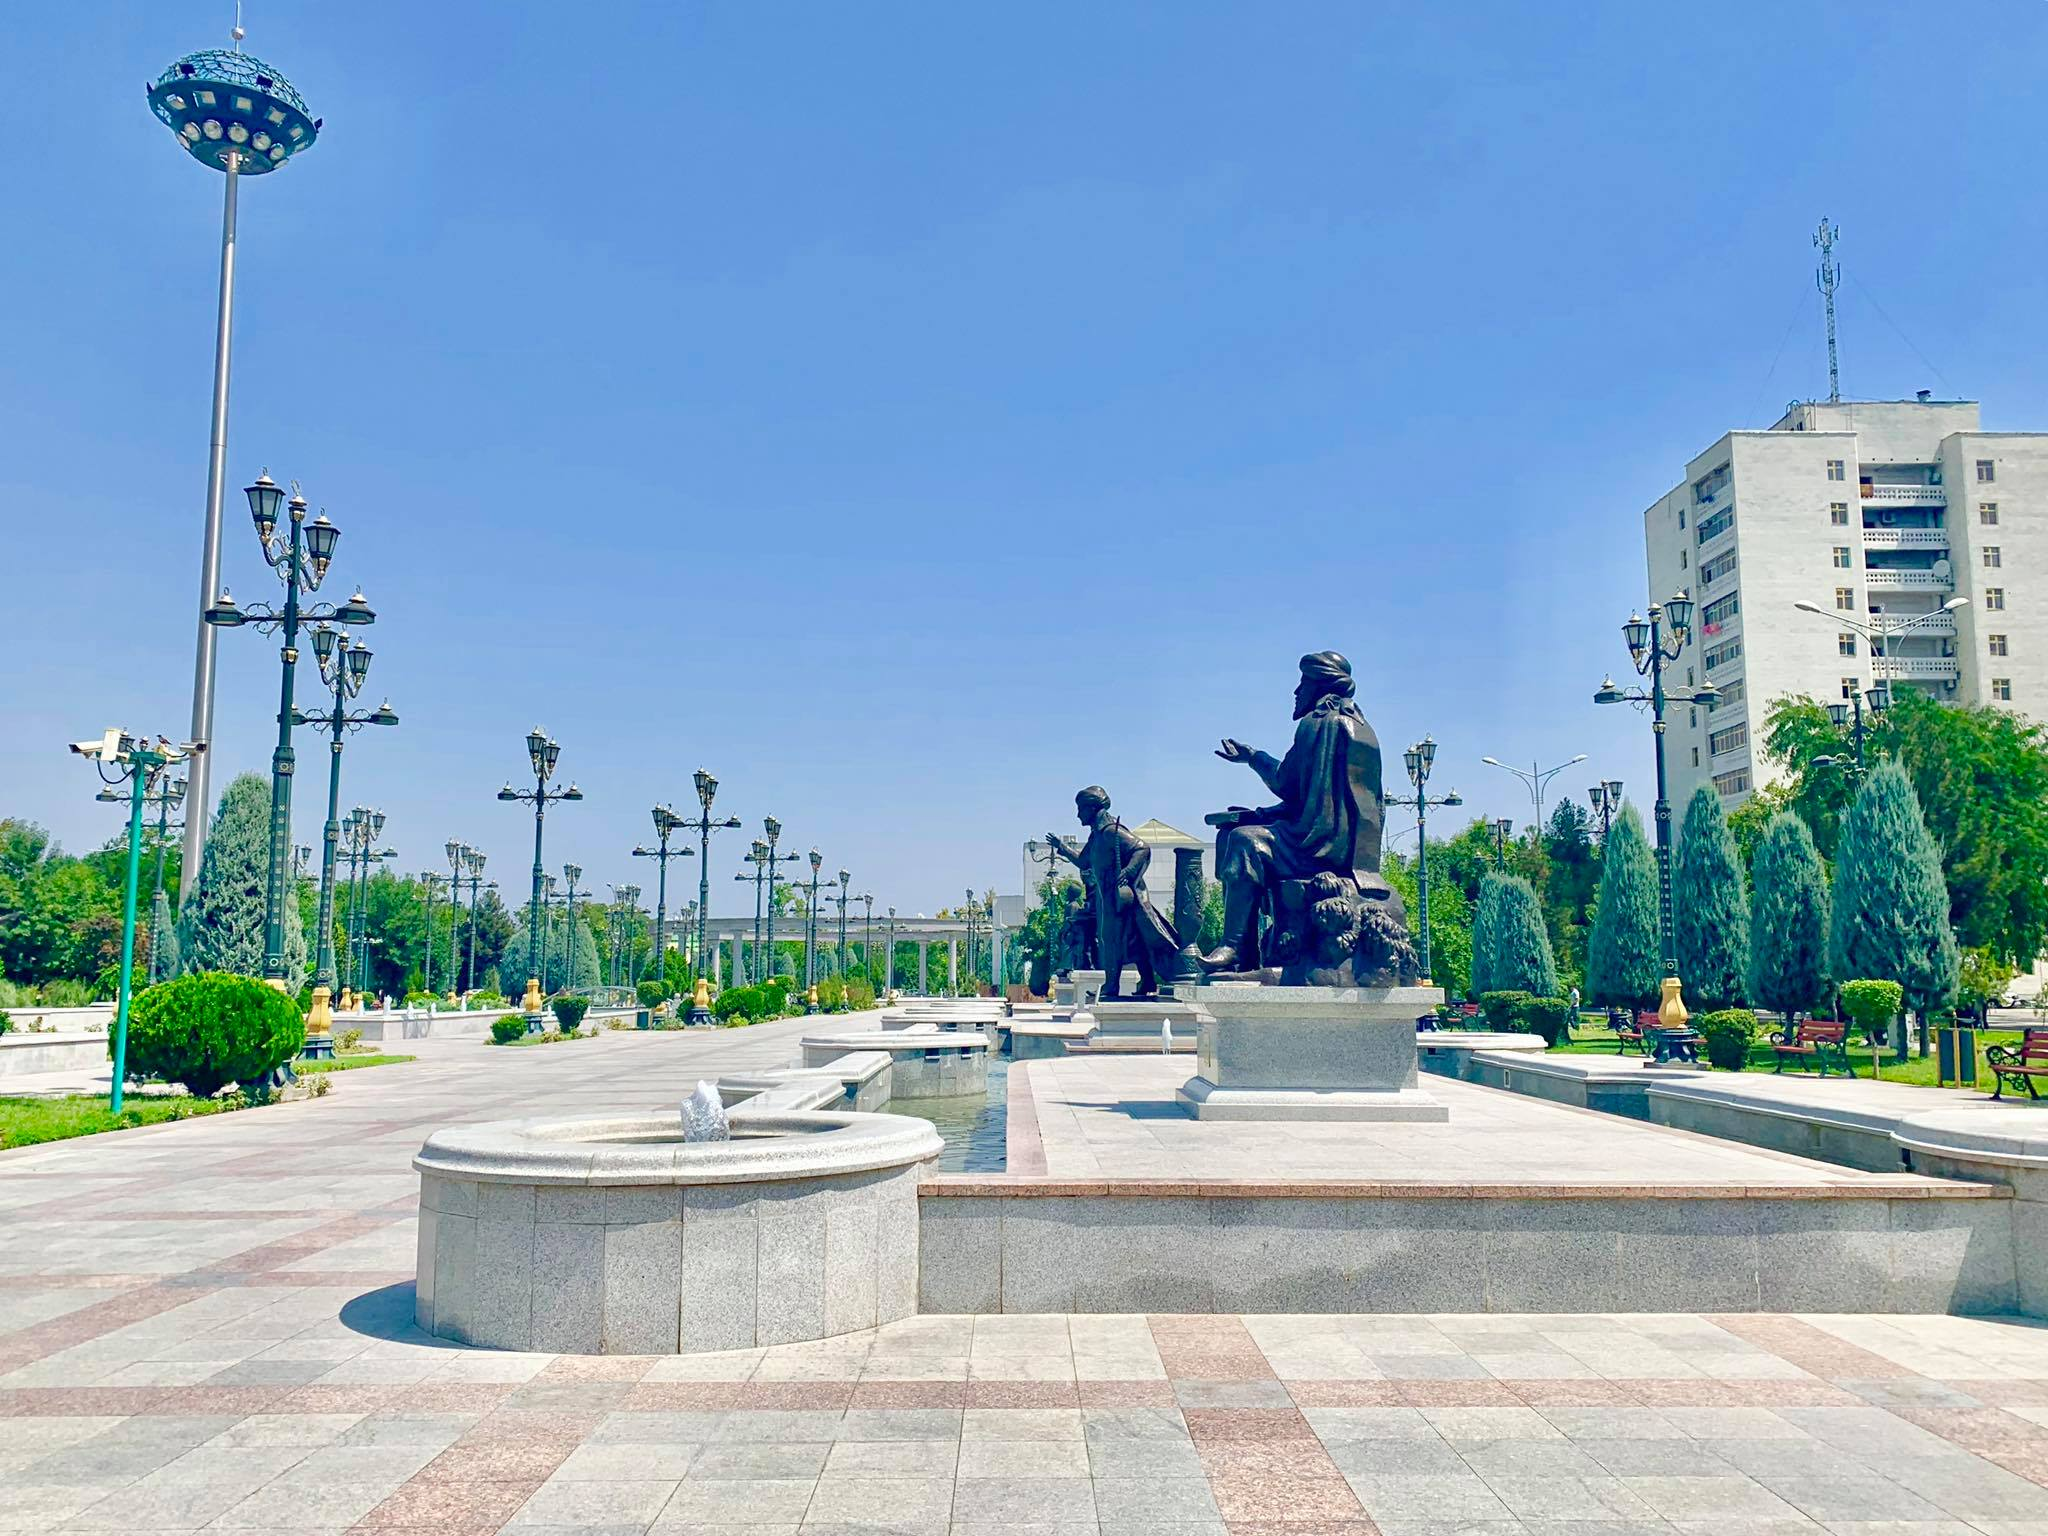 """Kach Solo Travels in 2019 Turkmenistan - the most """"unique"""" country I've visited in Central Asia10.jpg"""